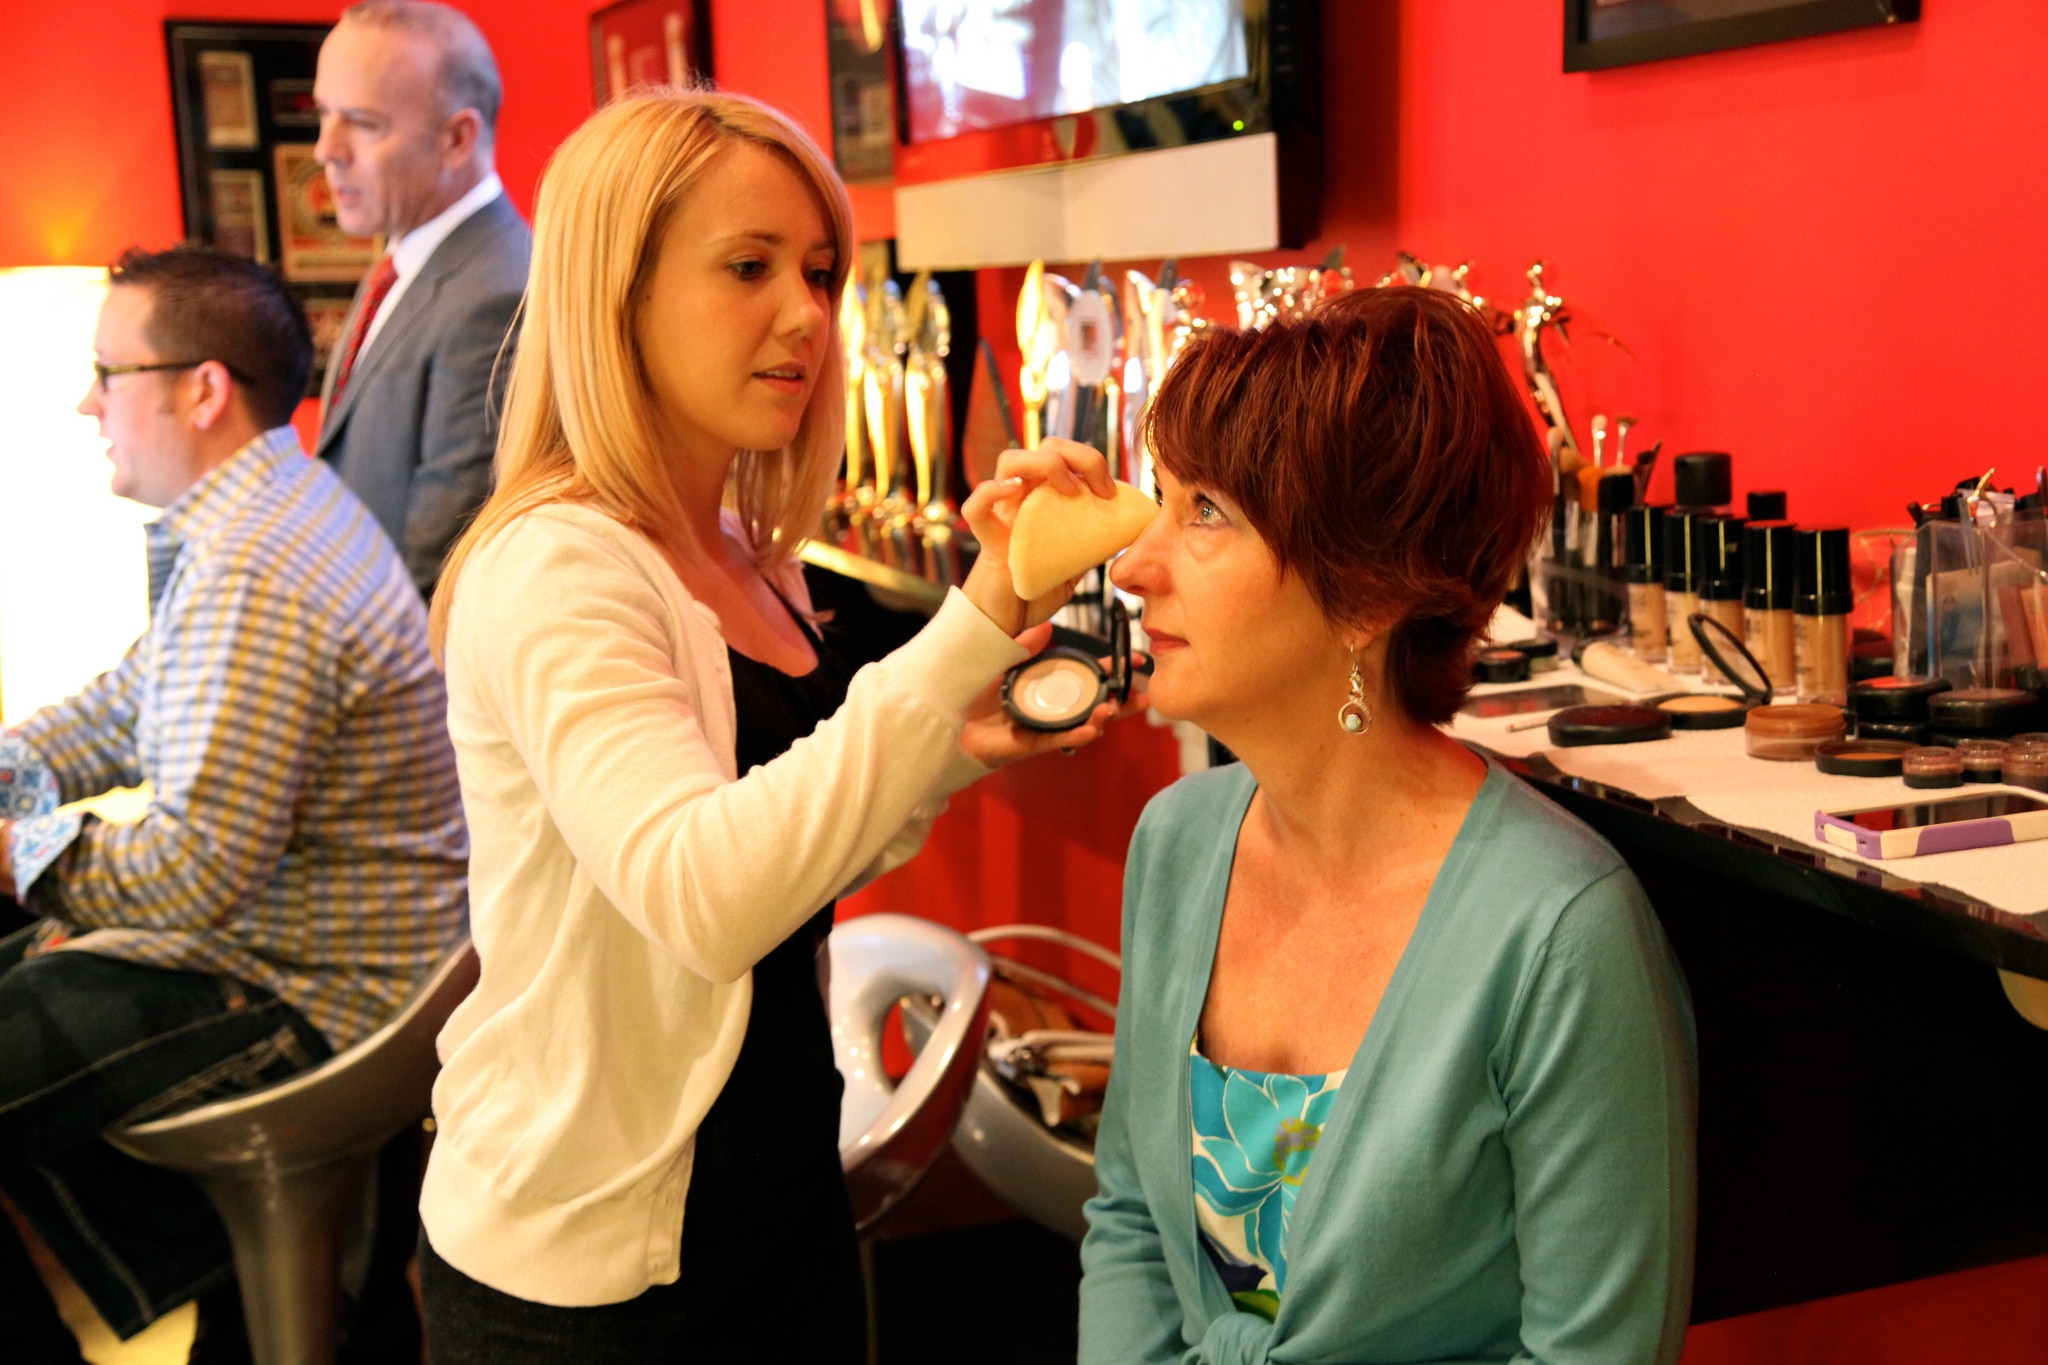 Michele Mann applying make-up to a woman.